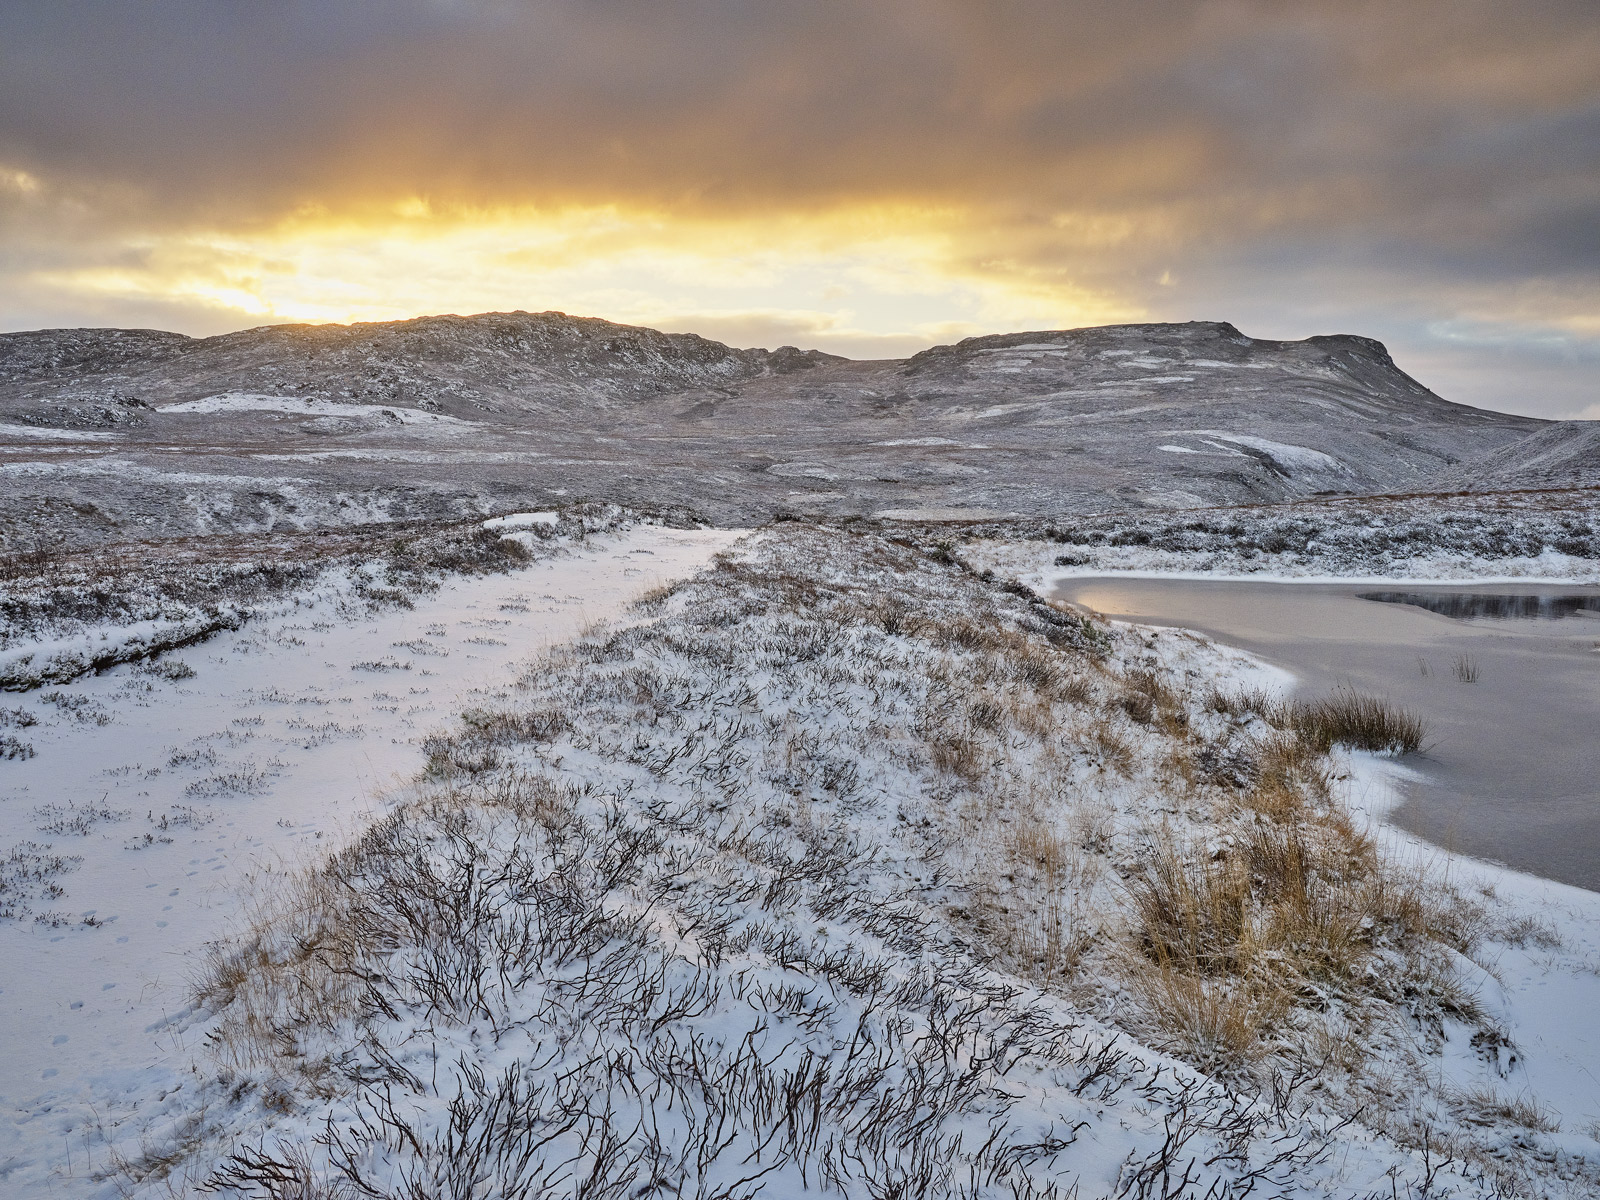 I arrived at the summit hill on Dava Moors treeless plateau and was greeted largely as expected by a fresh dusting of snow which...